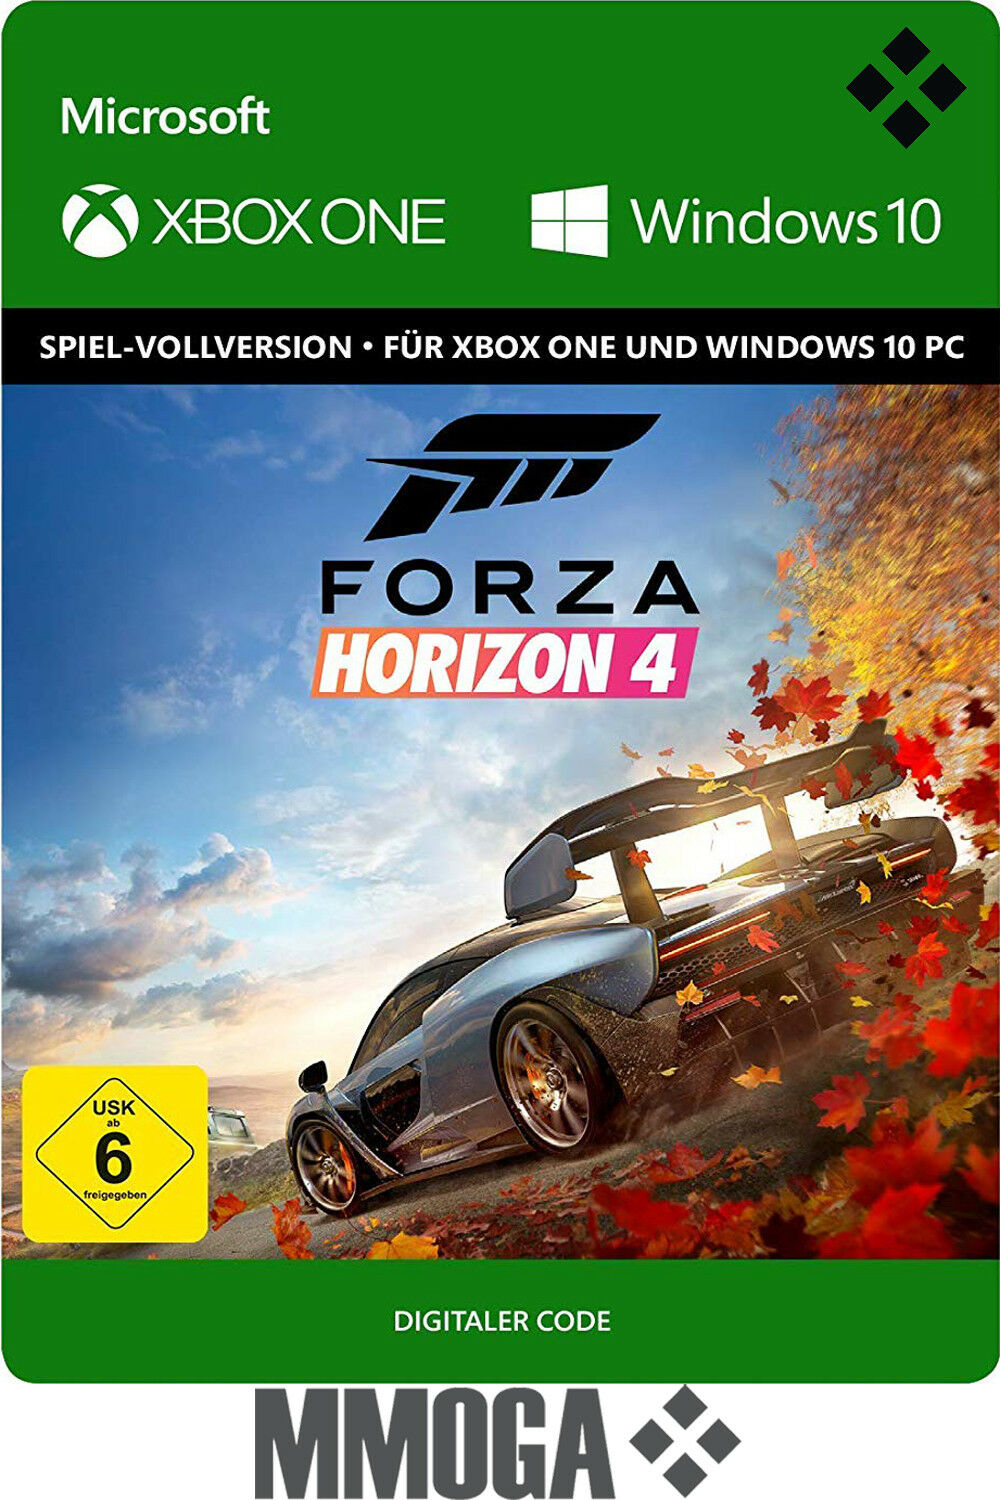 forza horizon 4 key xbox one windows 10 pc spiel. Black Bedroom Furniture Sets. Home Design Ideas